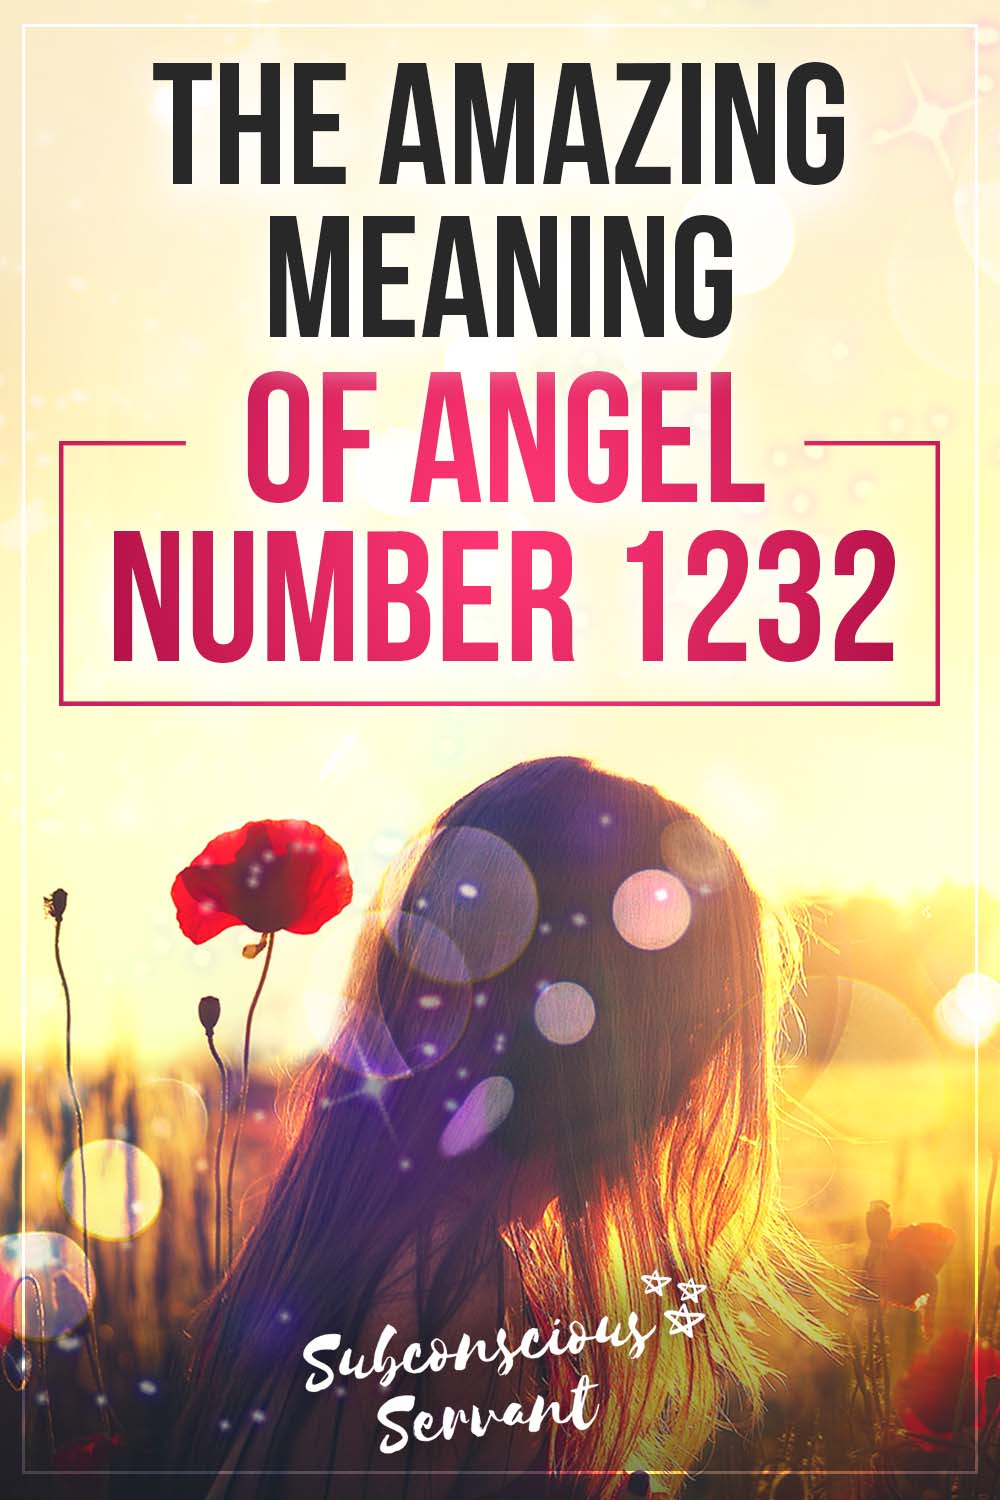 Noticing 1232? The Amazing Meaning Of Seeing Angel Number 1232